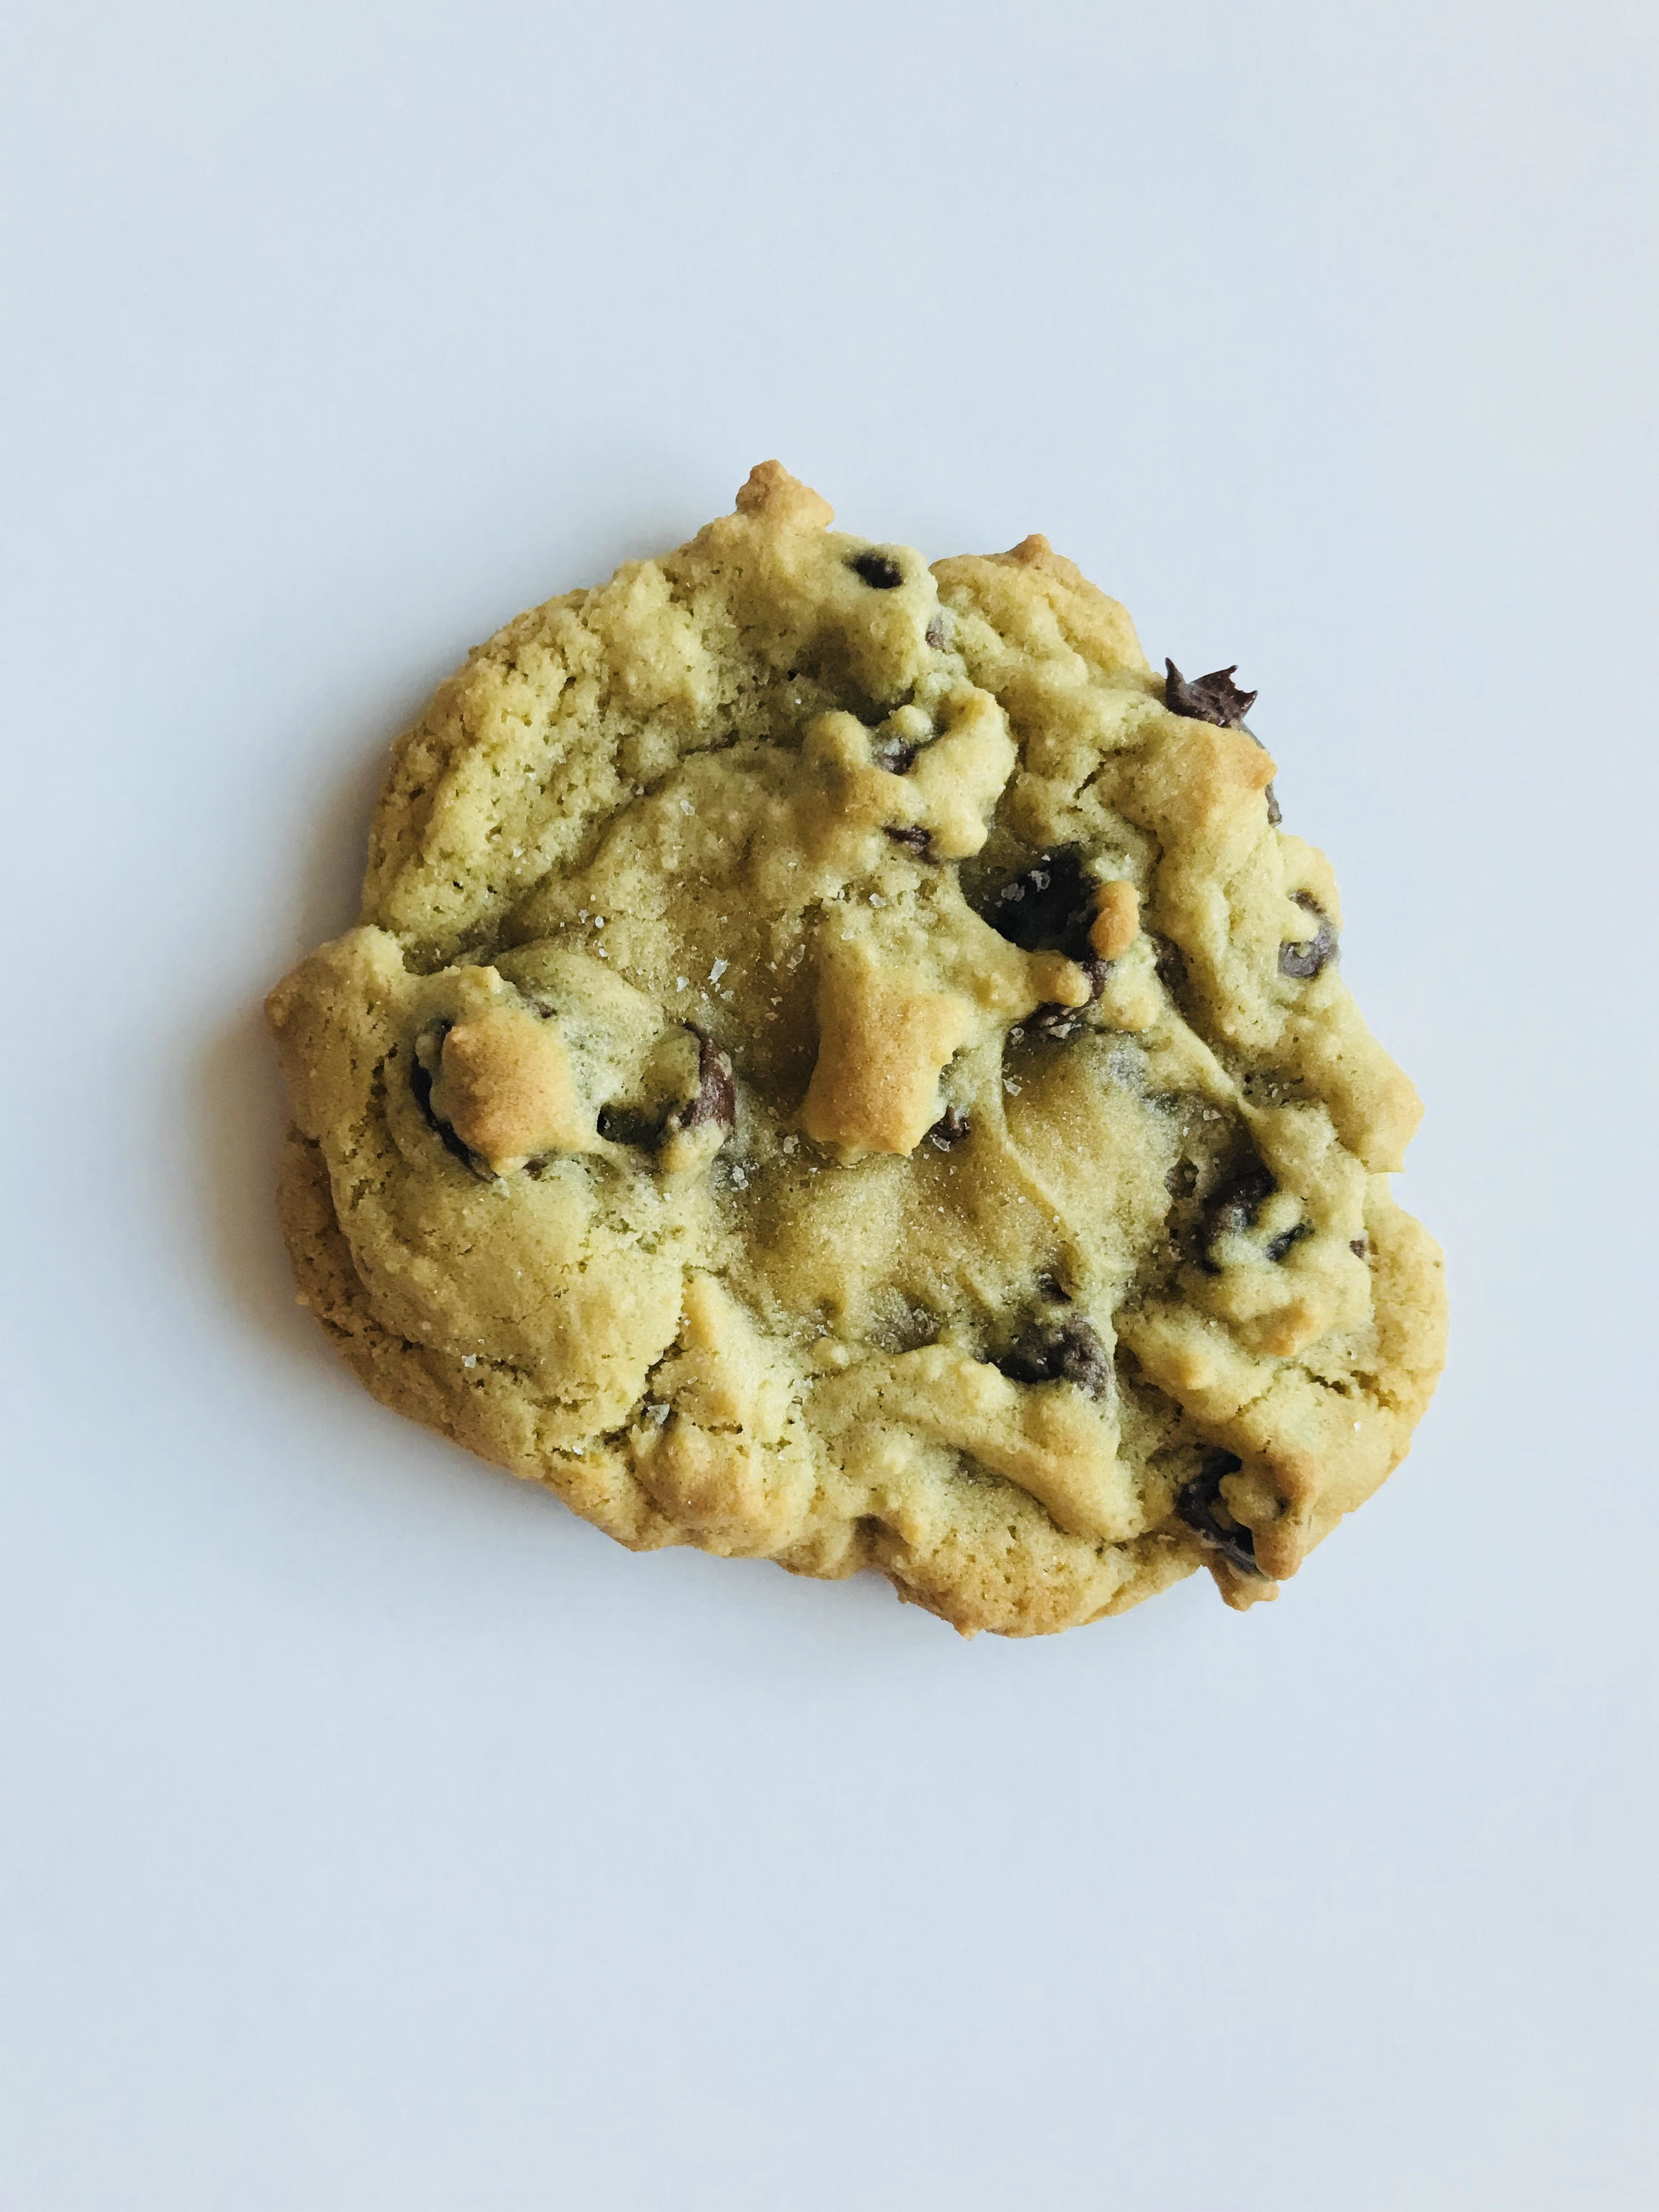 4. Recipe - Tried a new Magnolia Table cookbook recipe - Joanna's Chocolate Chip Cookies.